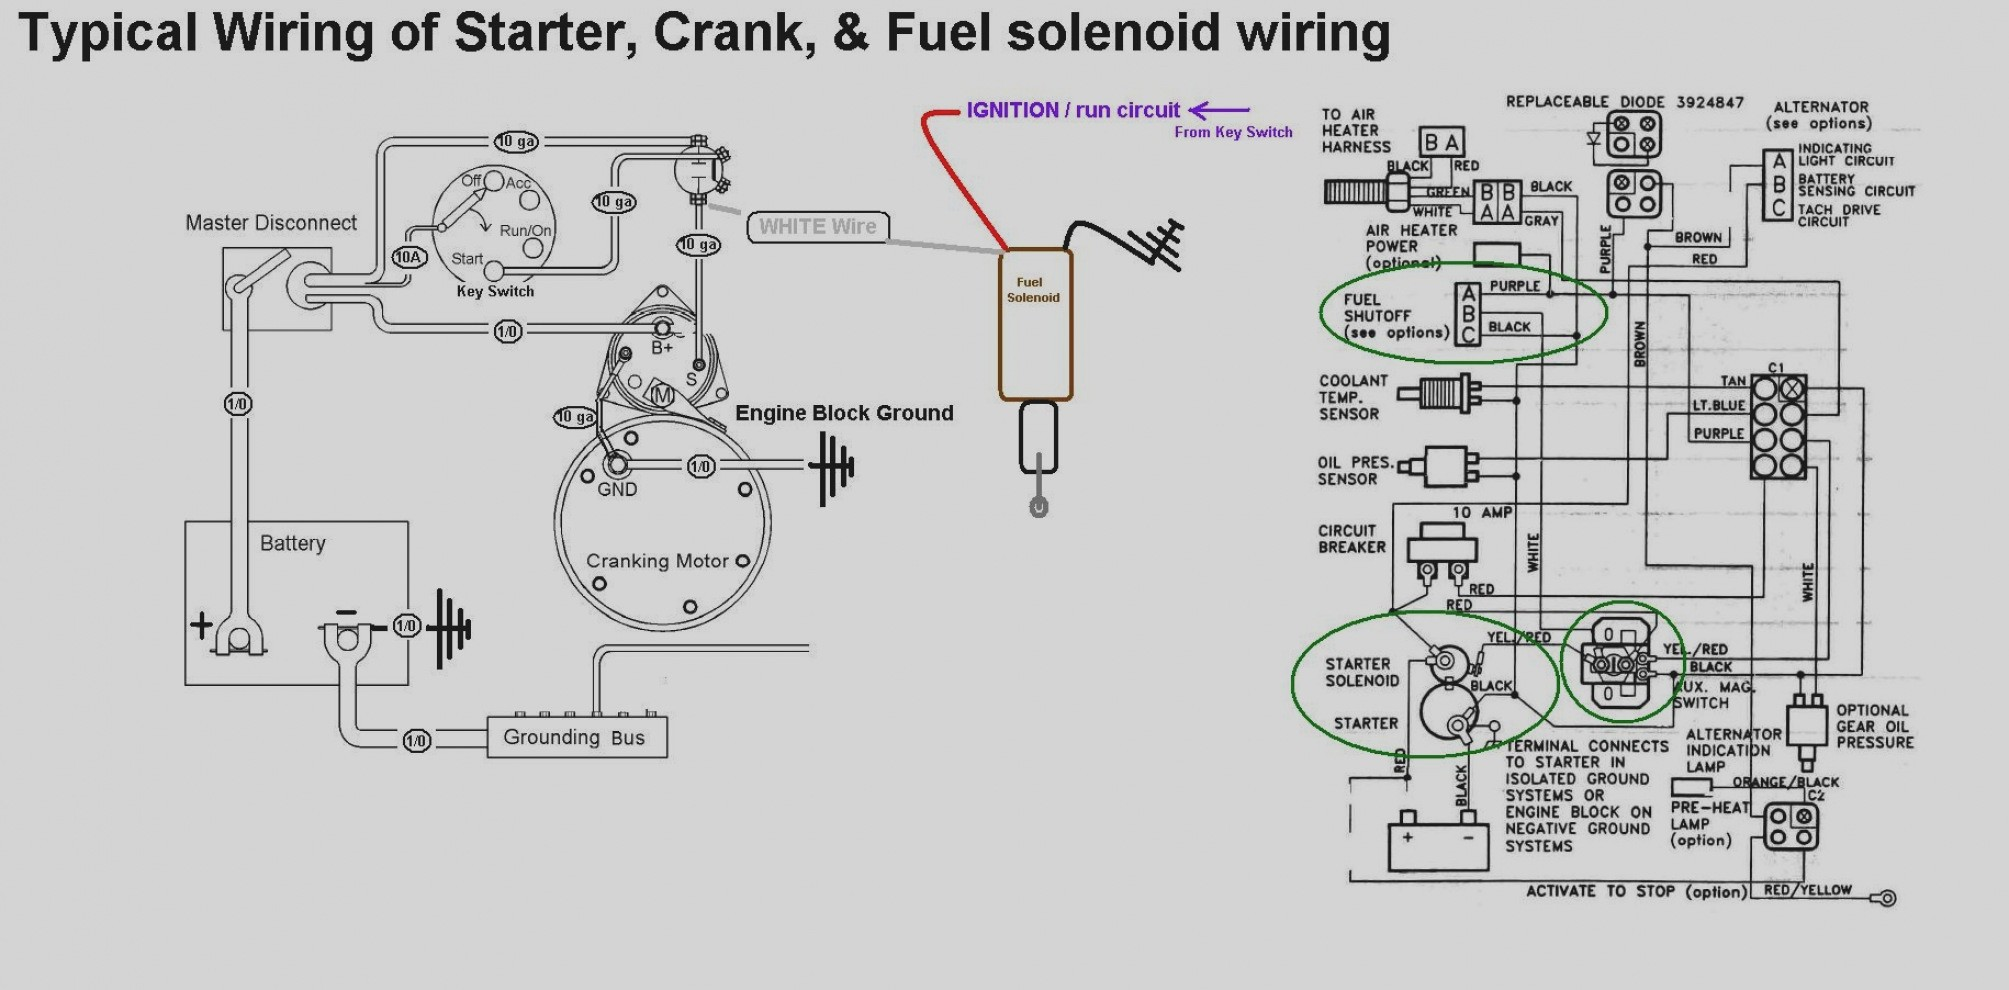 Ktm Solenoid Wiring Diagram Archive Of Automotive 500 Actuator Coil Ford Rh Neckcream Co